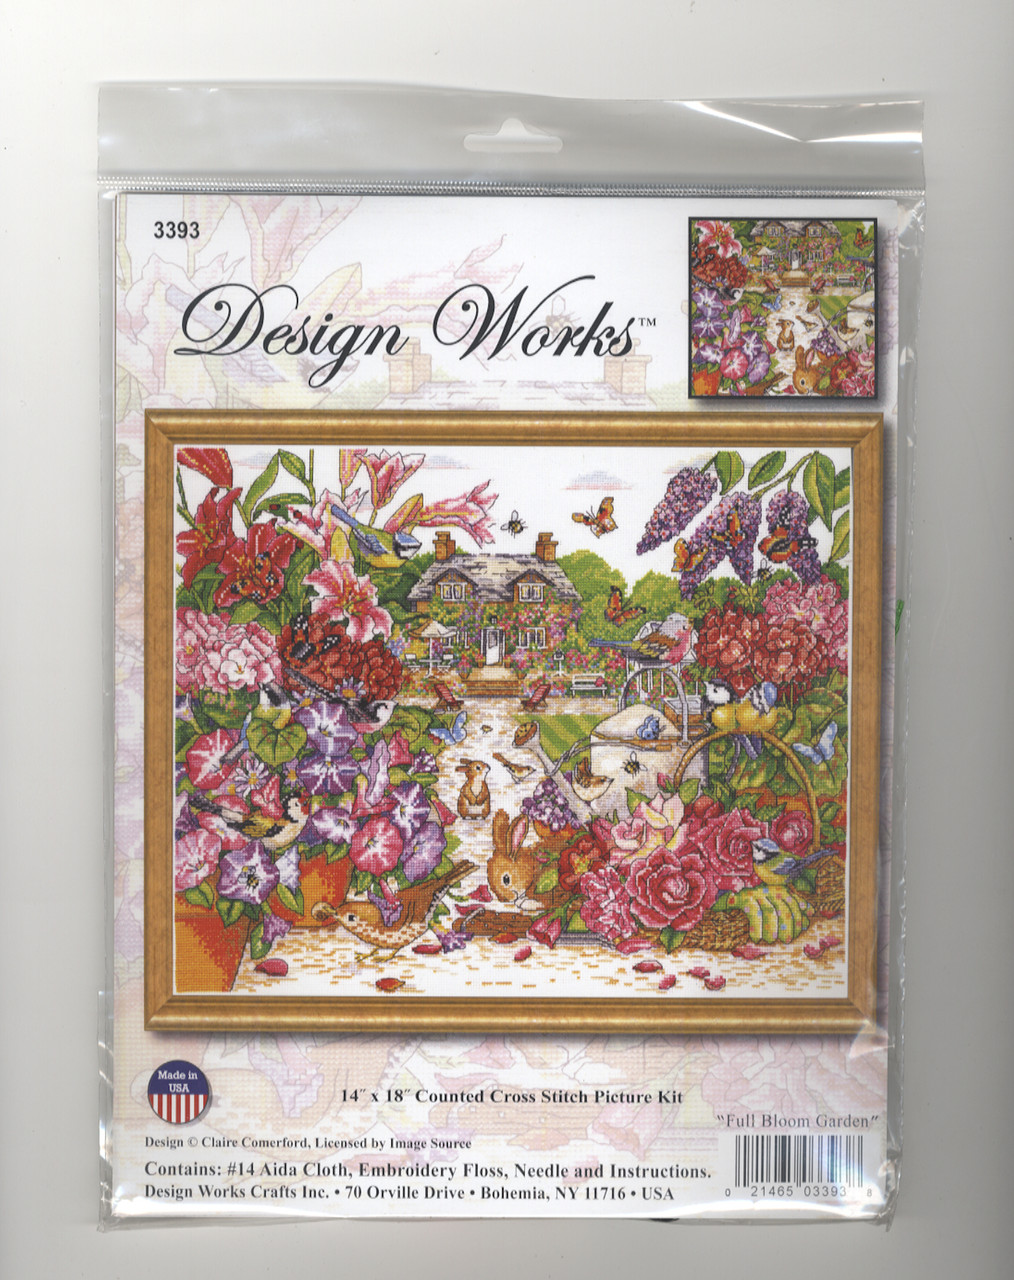 Design Works - Full Bloom Garden